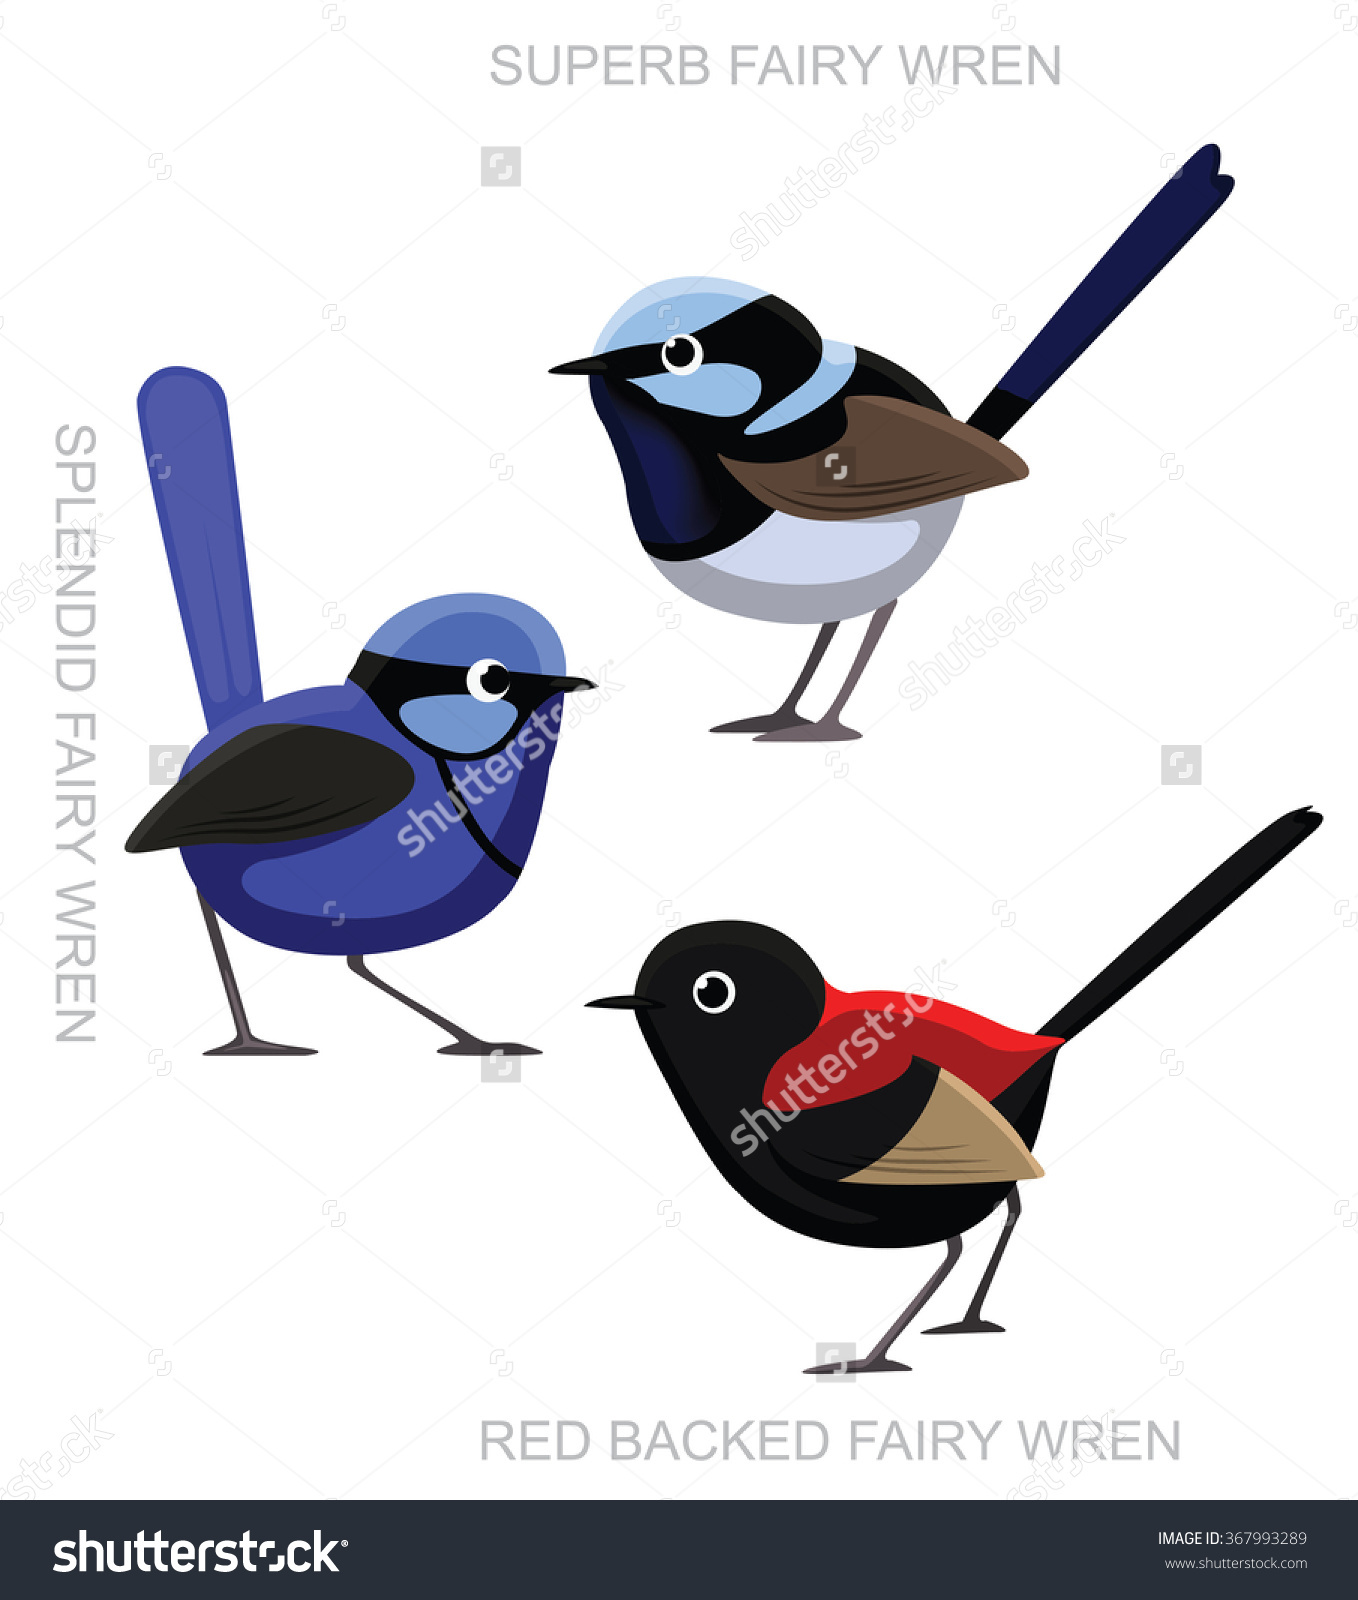 Superb Fairywren clipart #16, Download drawings